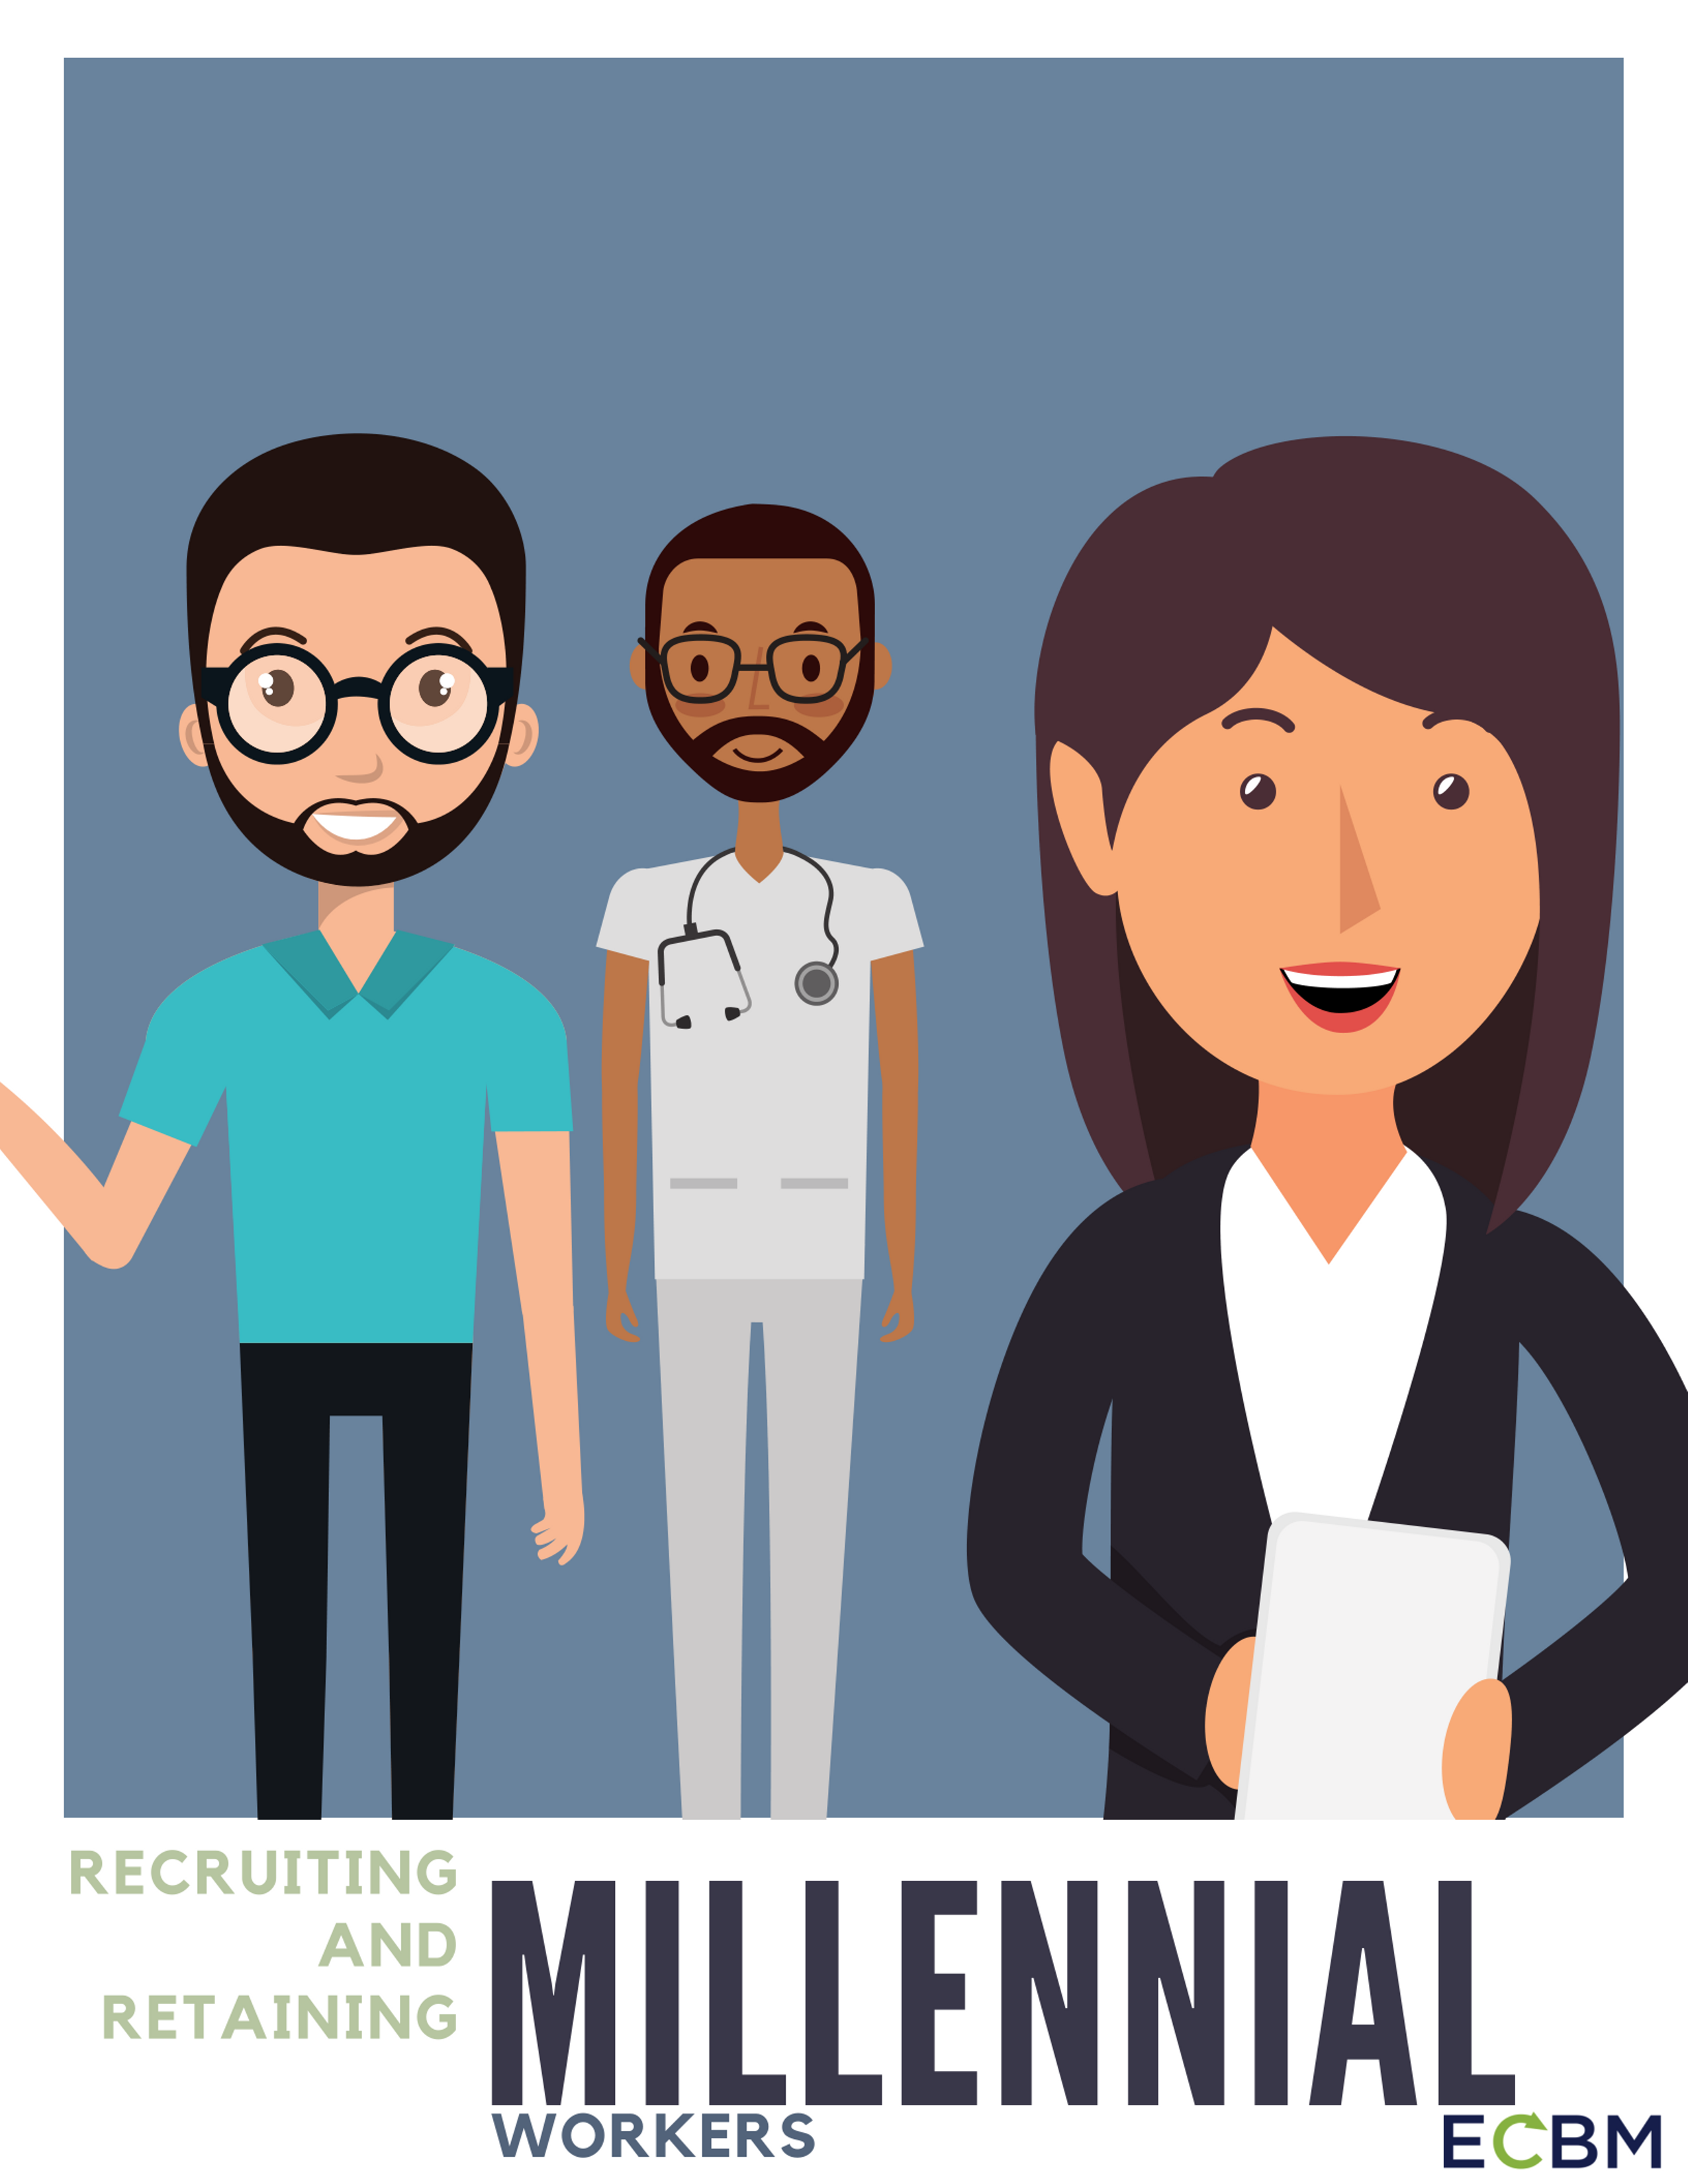 millennial workers recruiting and retaining